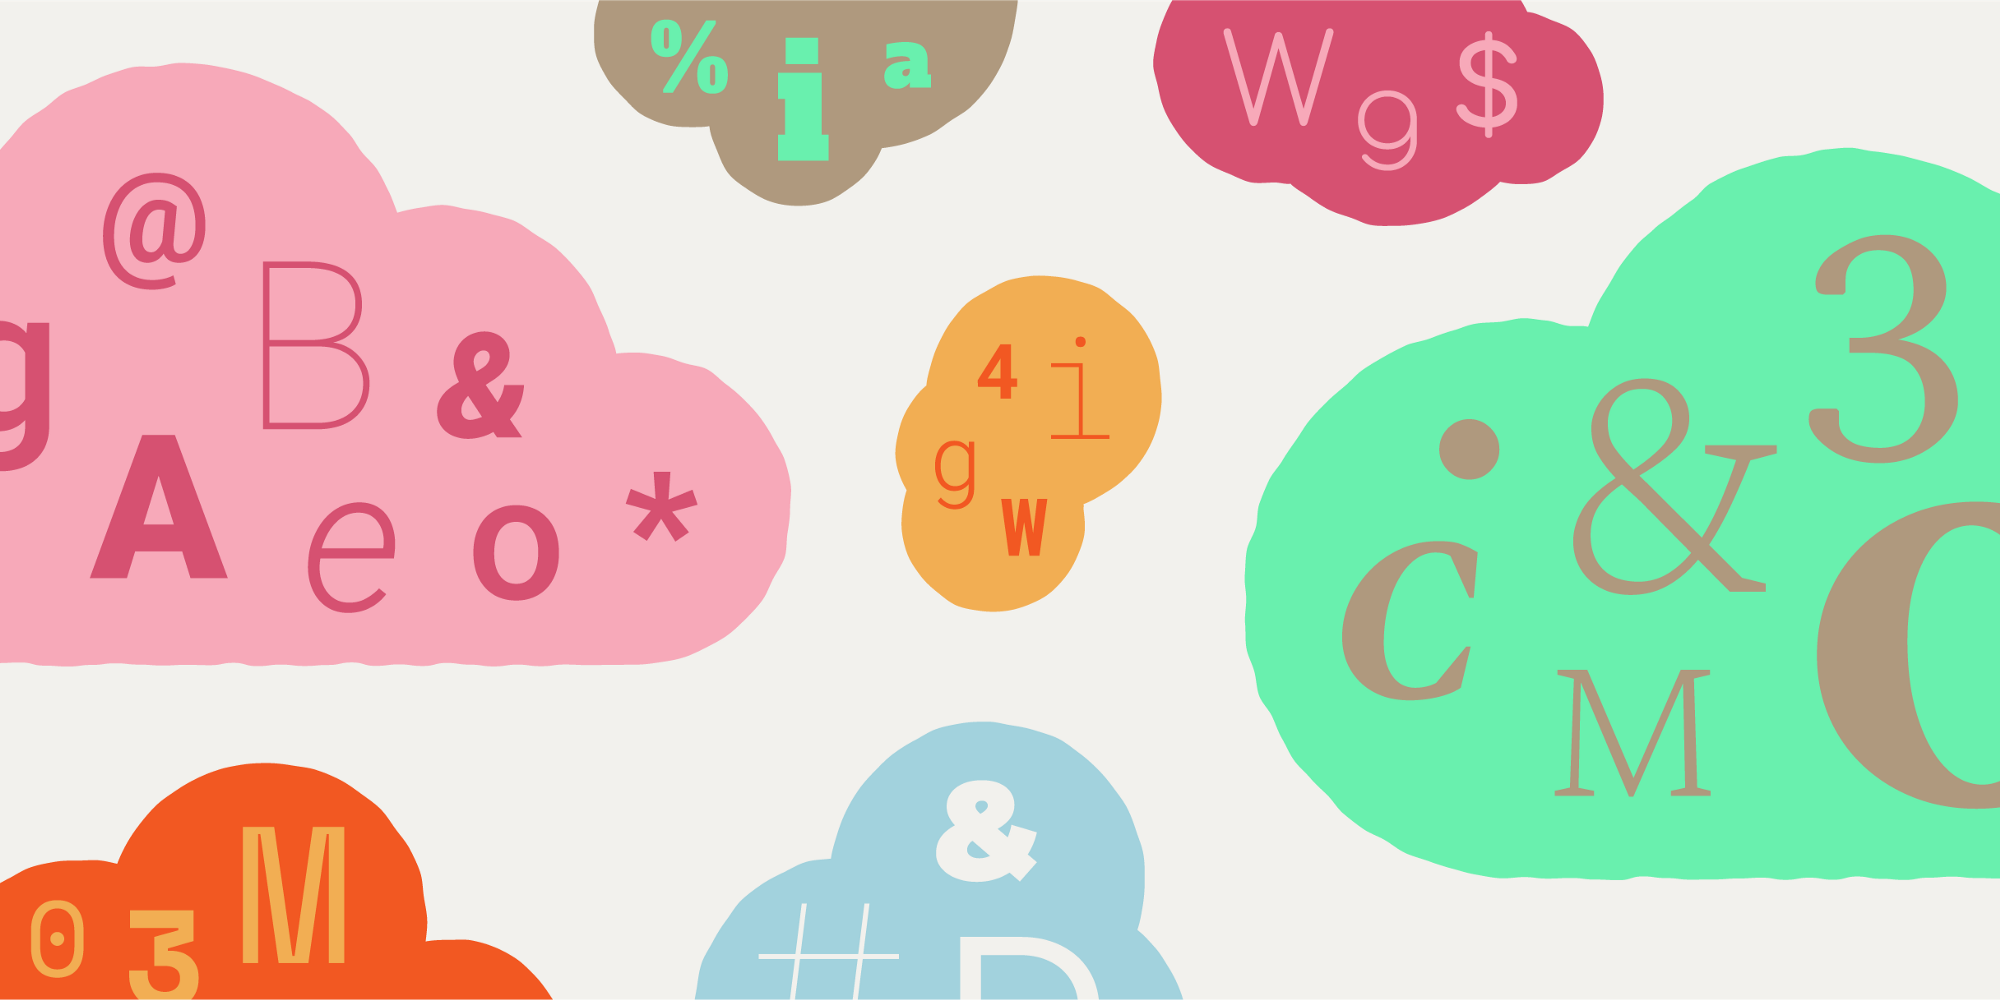 The Android Developer S Guide To Better Typography Google Design